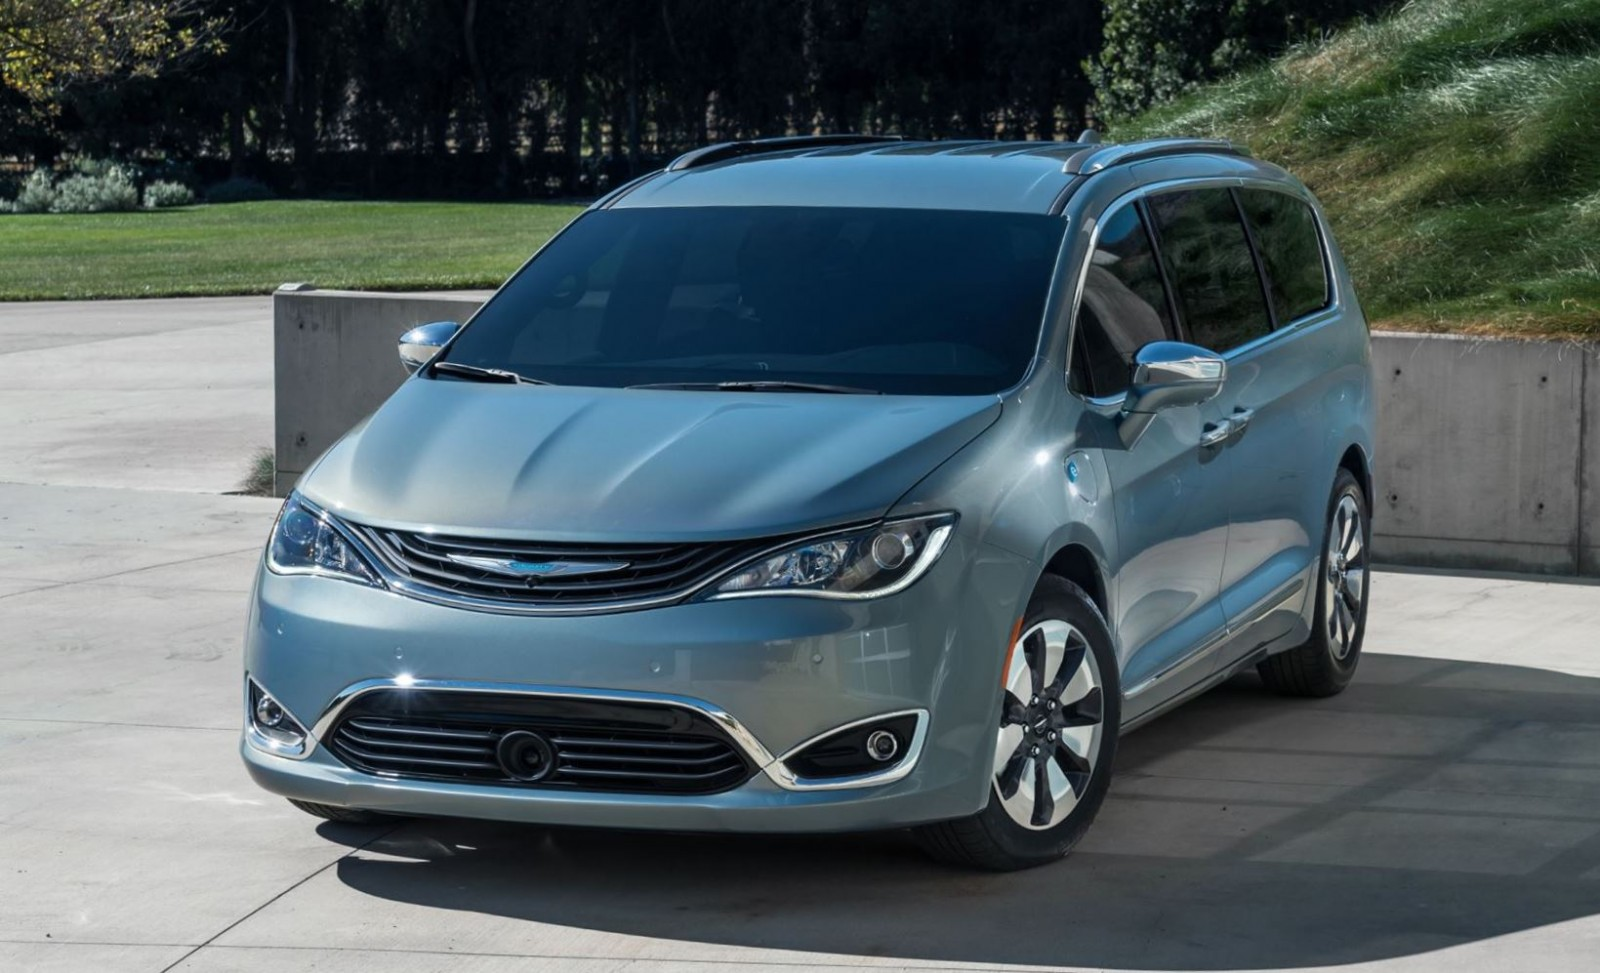 2017 chrysler pacifica is all new minivan phev hybrid. Black Bedroom Furniture Sets. Home Design Ideas